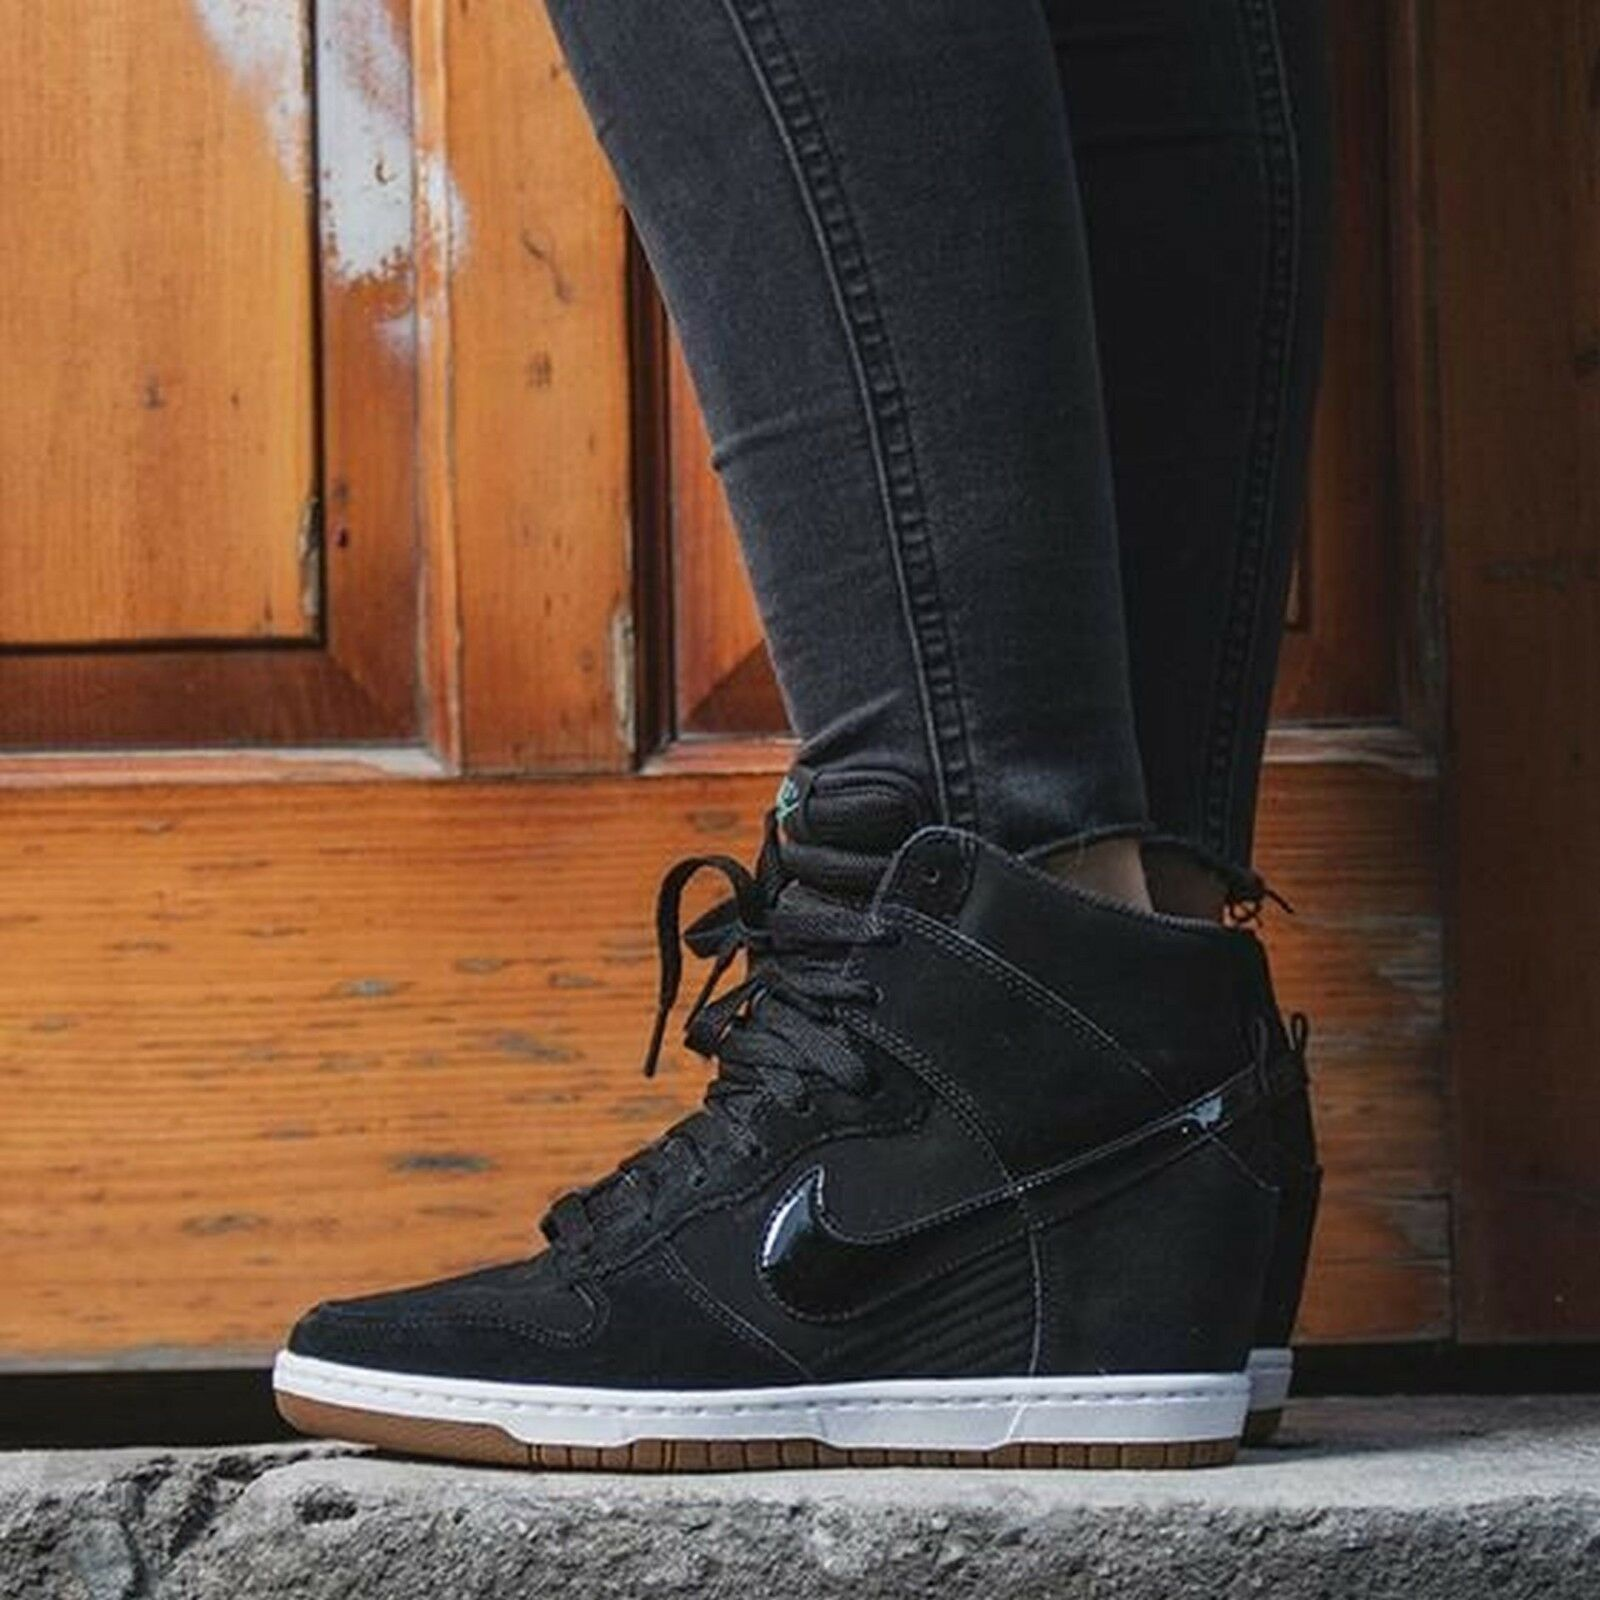 Sky Nike Pour High Dunk Chaussures Homme 011 644877 yfbg76